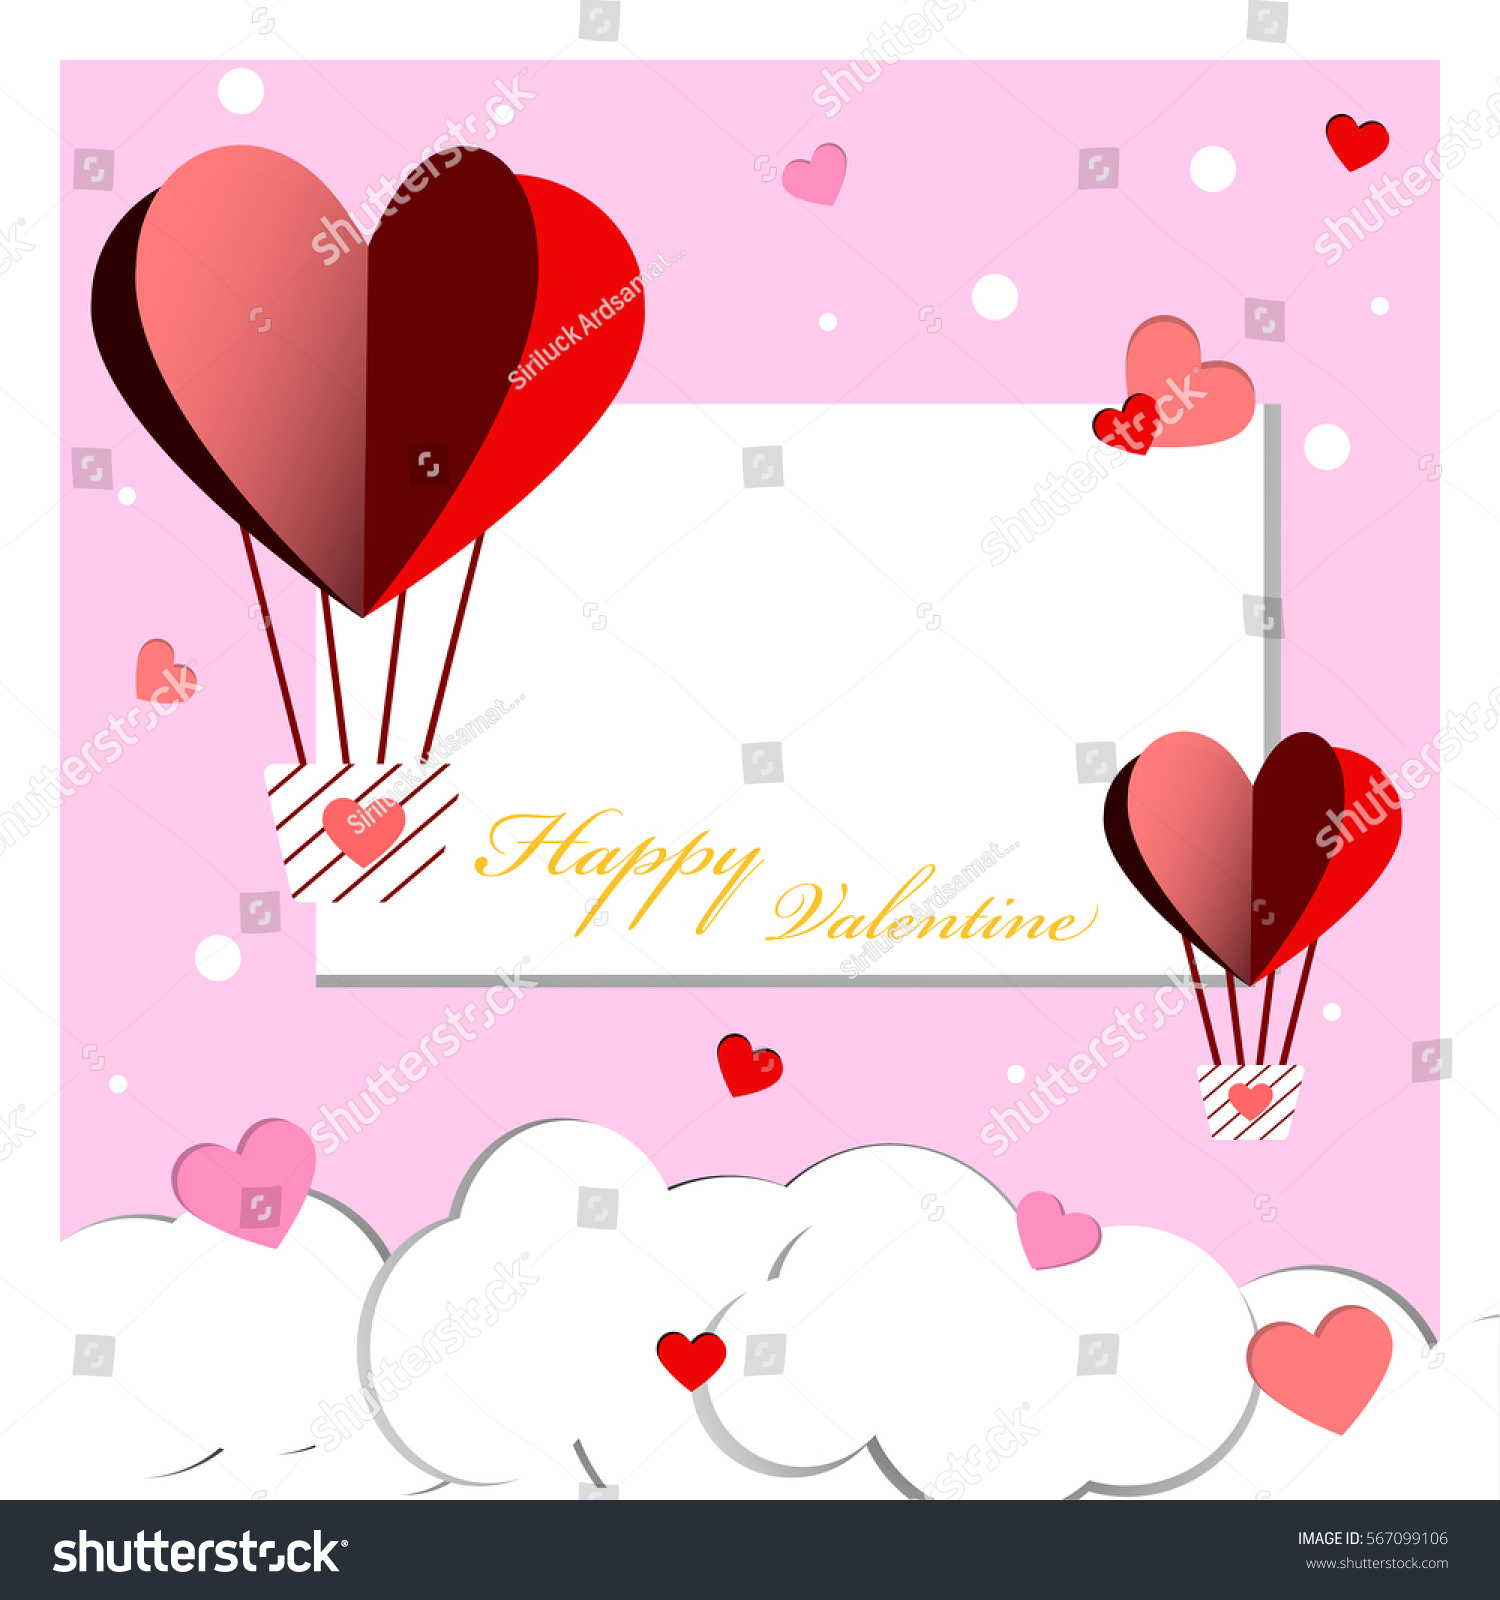 Heart Balloon and Snow of Happy Valentine Day.Pink Background. #567099106